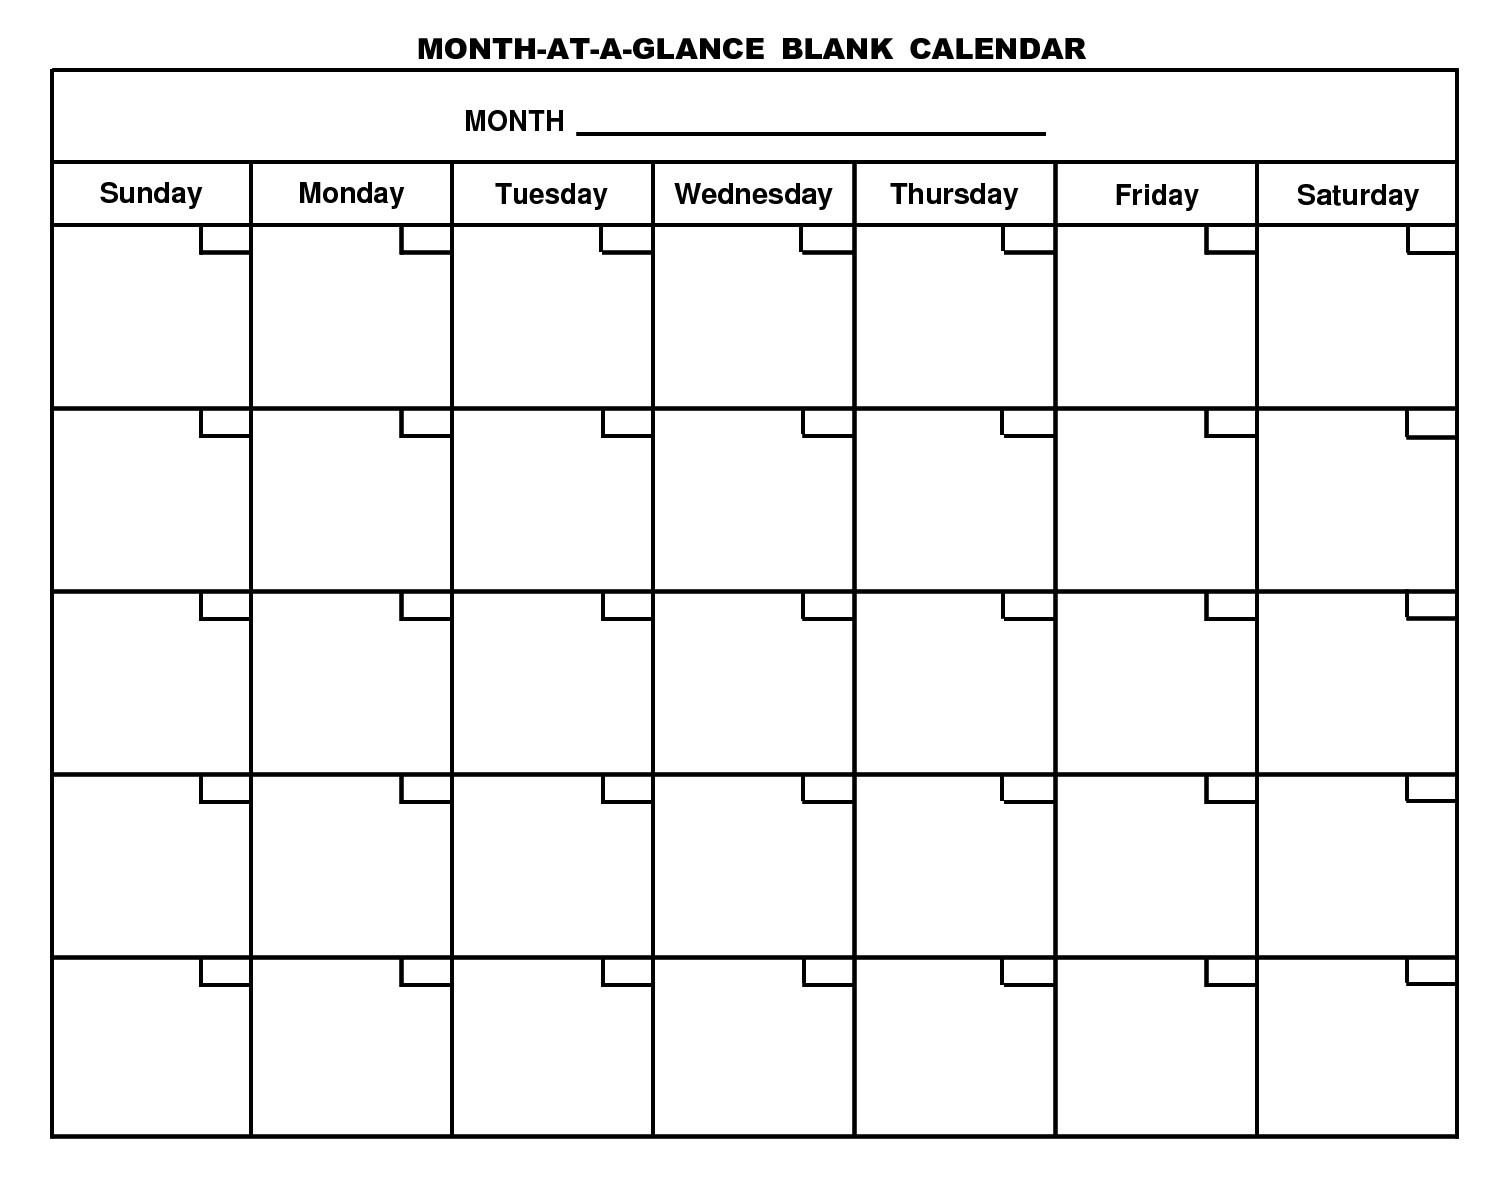 Monthly Calendar Template Uxdjxg In Month At A Glance Blank